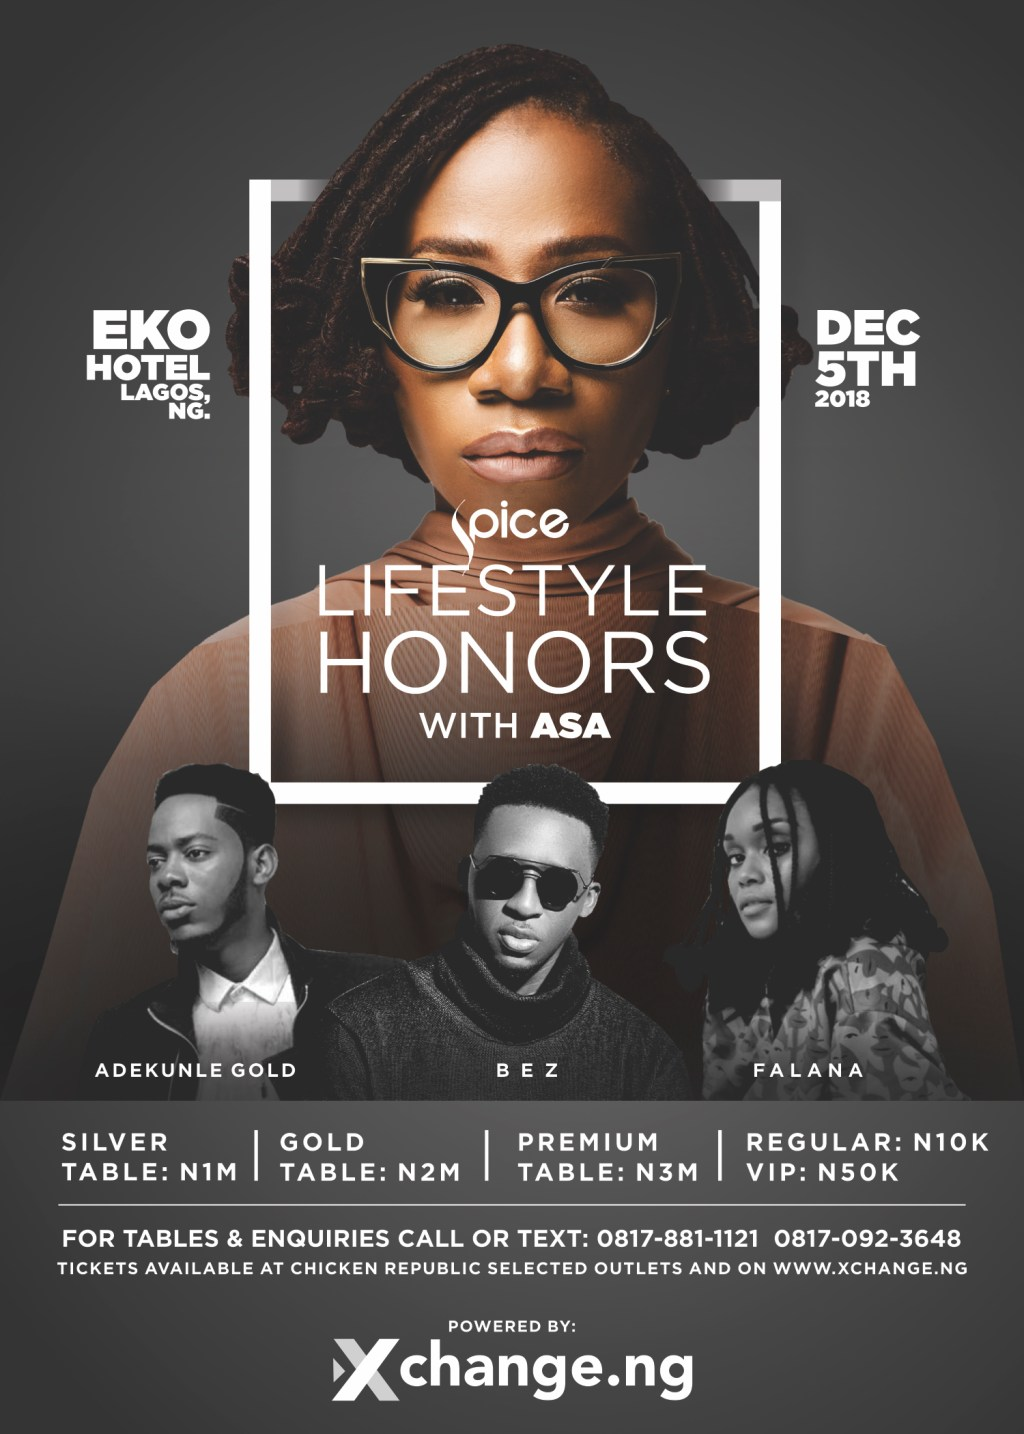 Spice-Lifestyle-Honors-ASA-2018